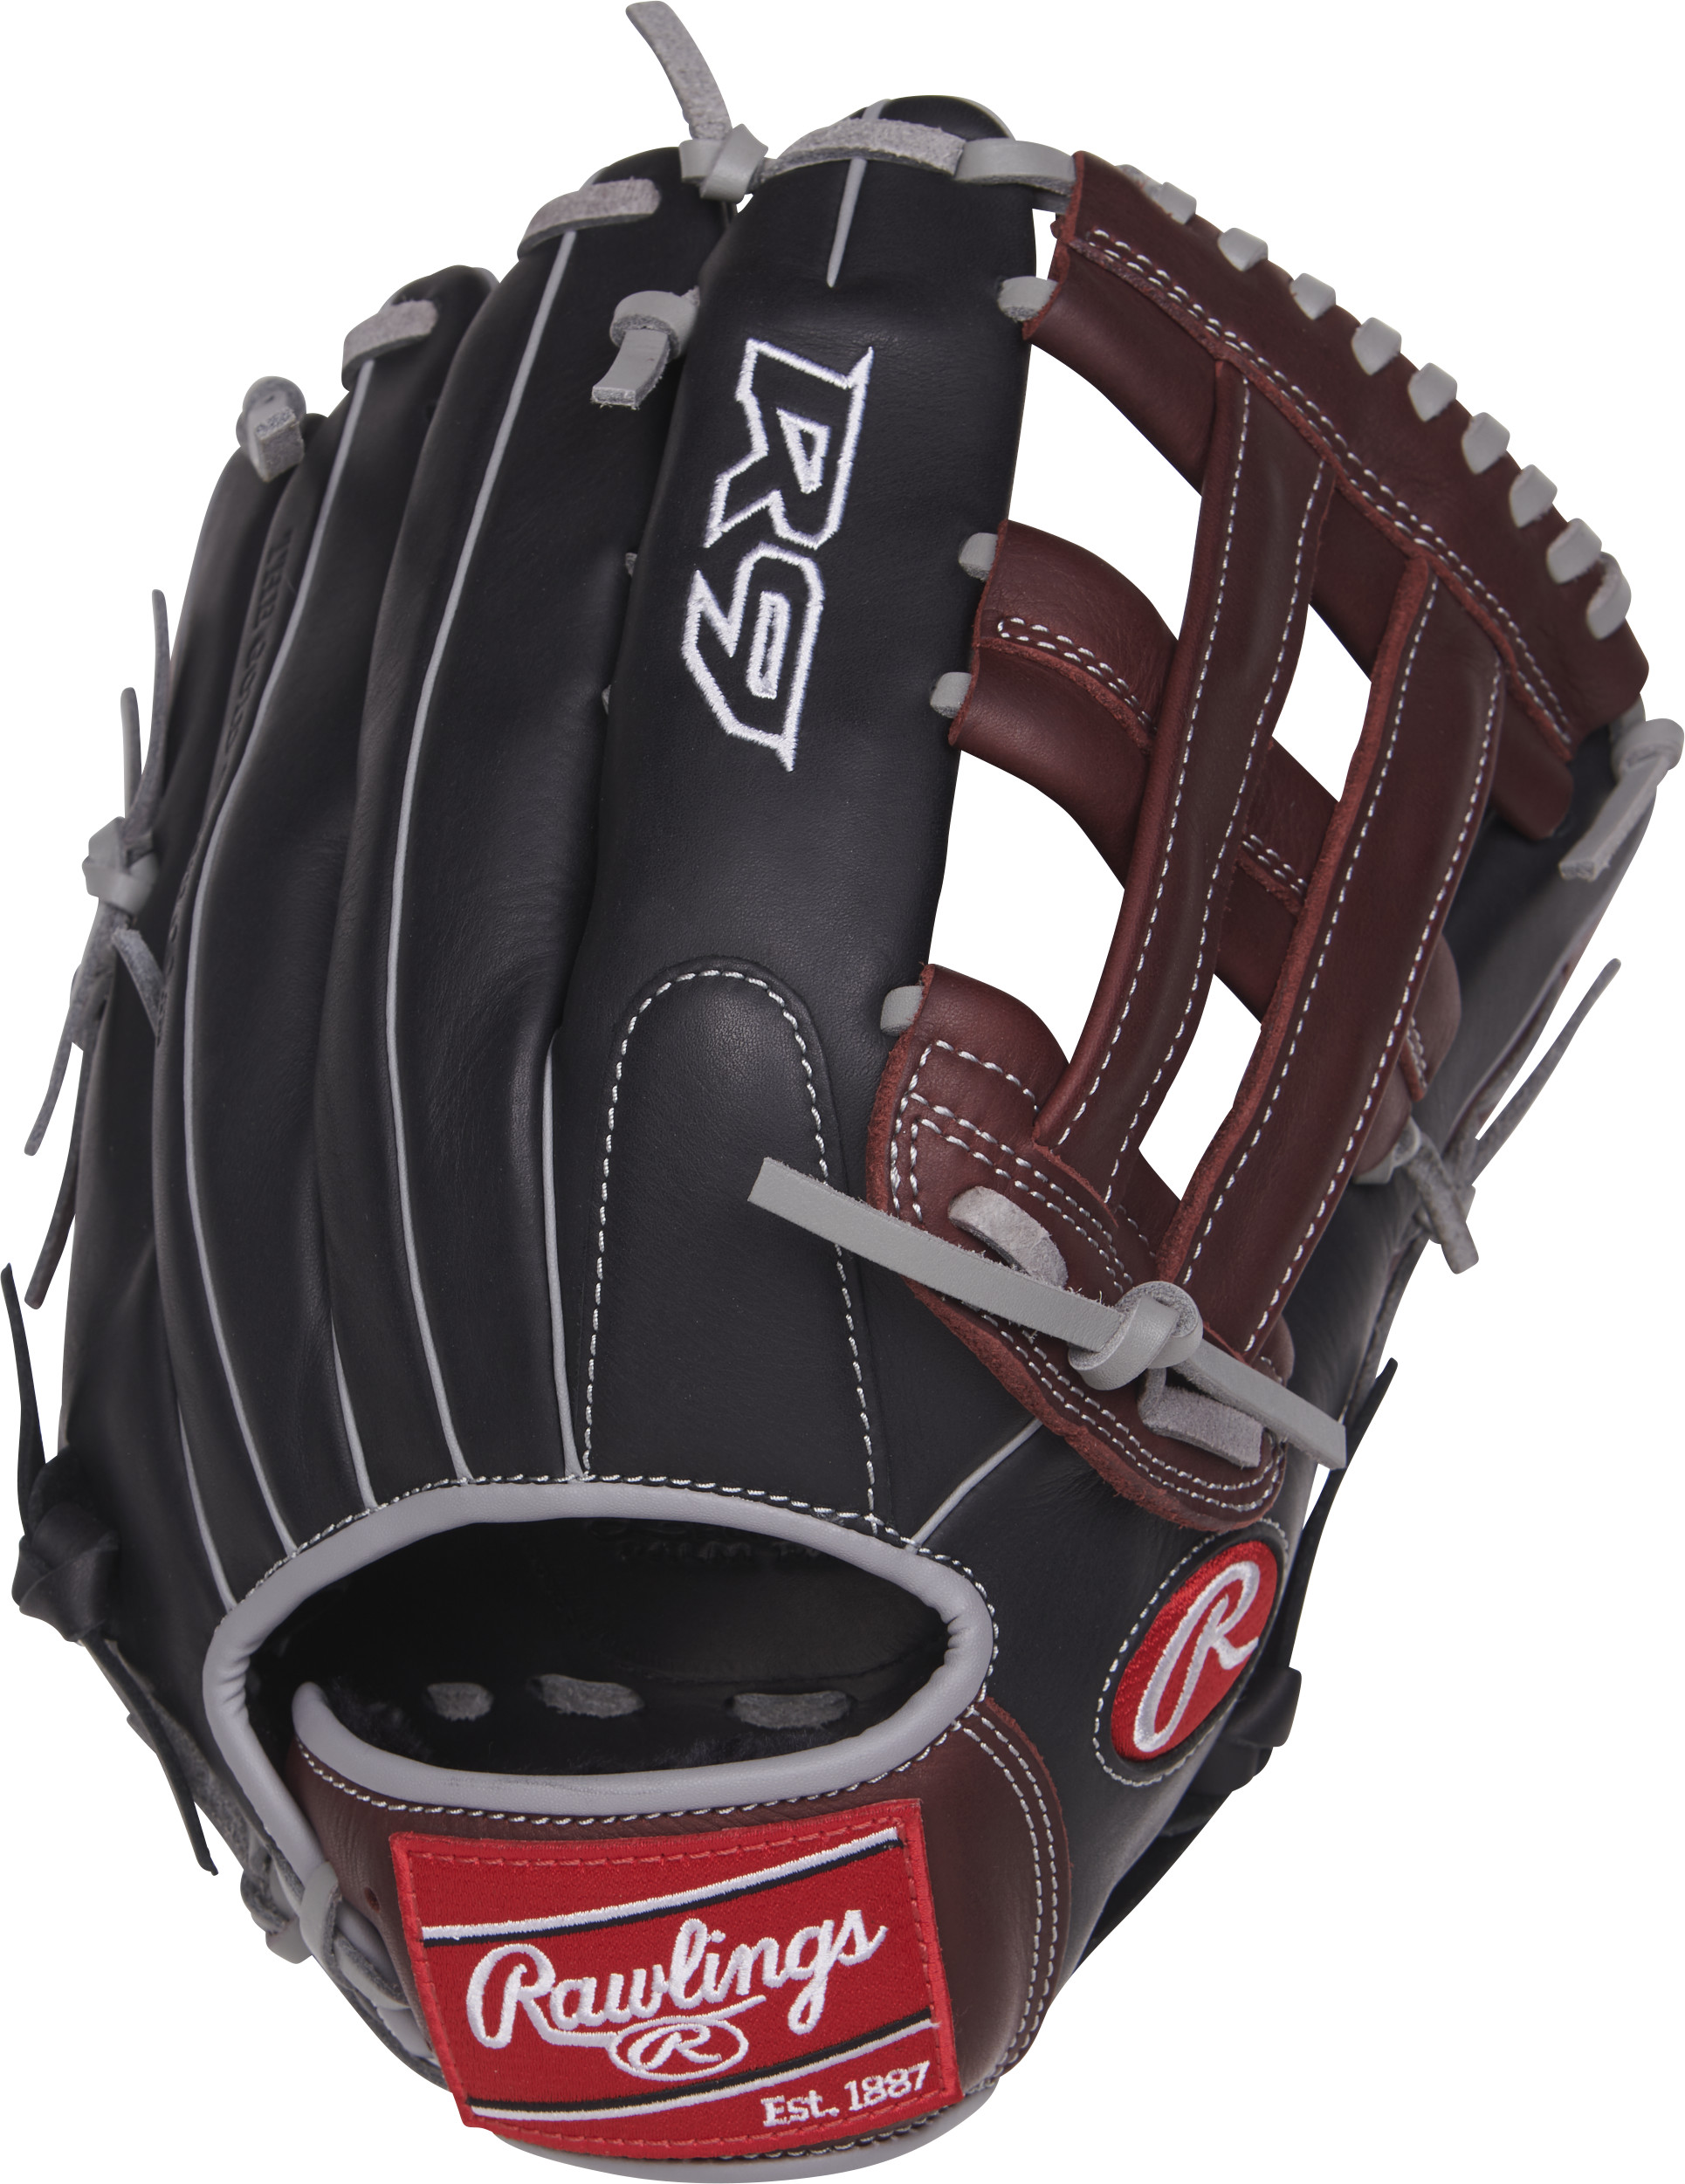 http://www.bestbatdeals.com/images/gloves/rawlings/R93029-6BSG-2.jpg